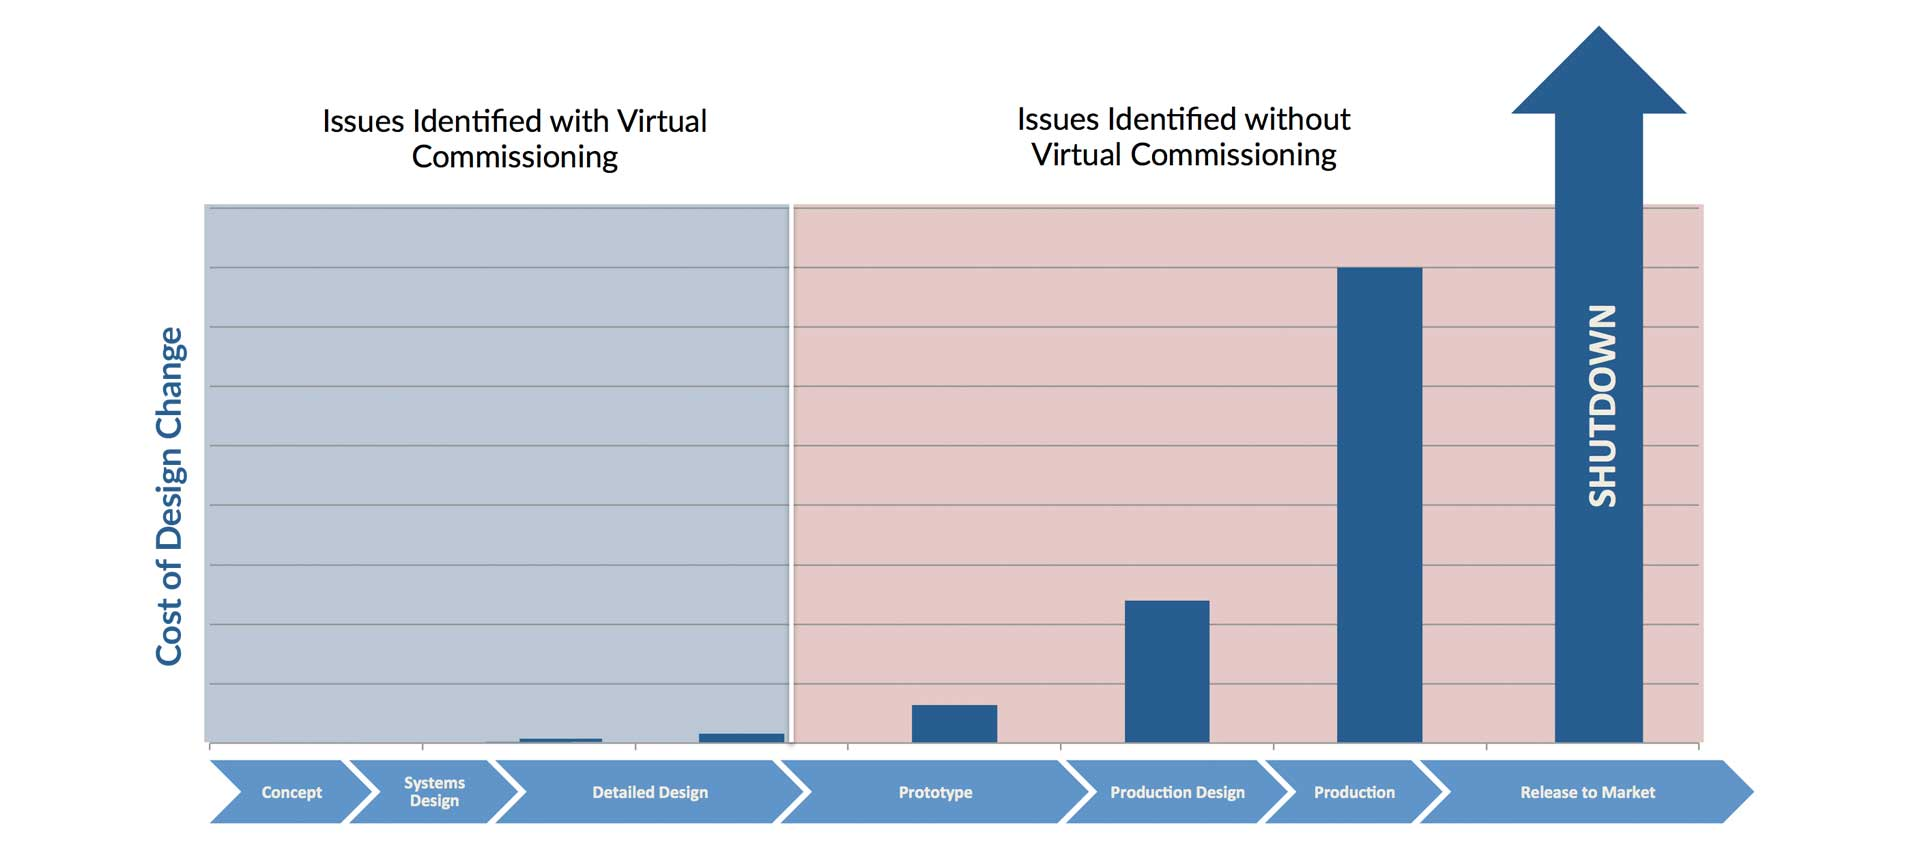 Virtual commissioning identifies integration problems early in the development cycle when the cost of changes is low.